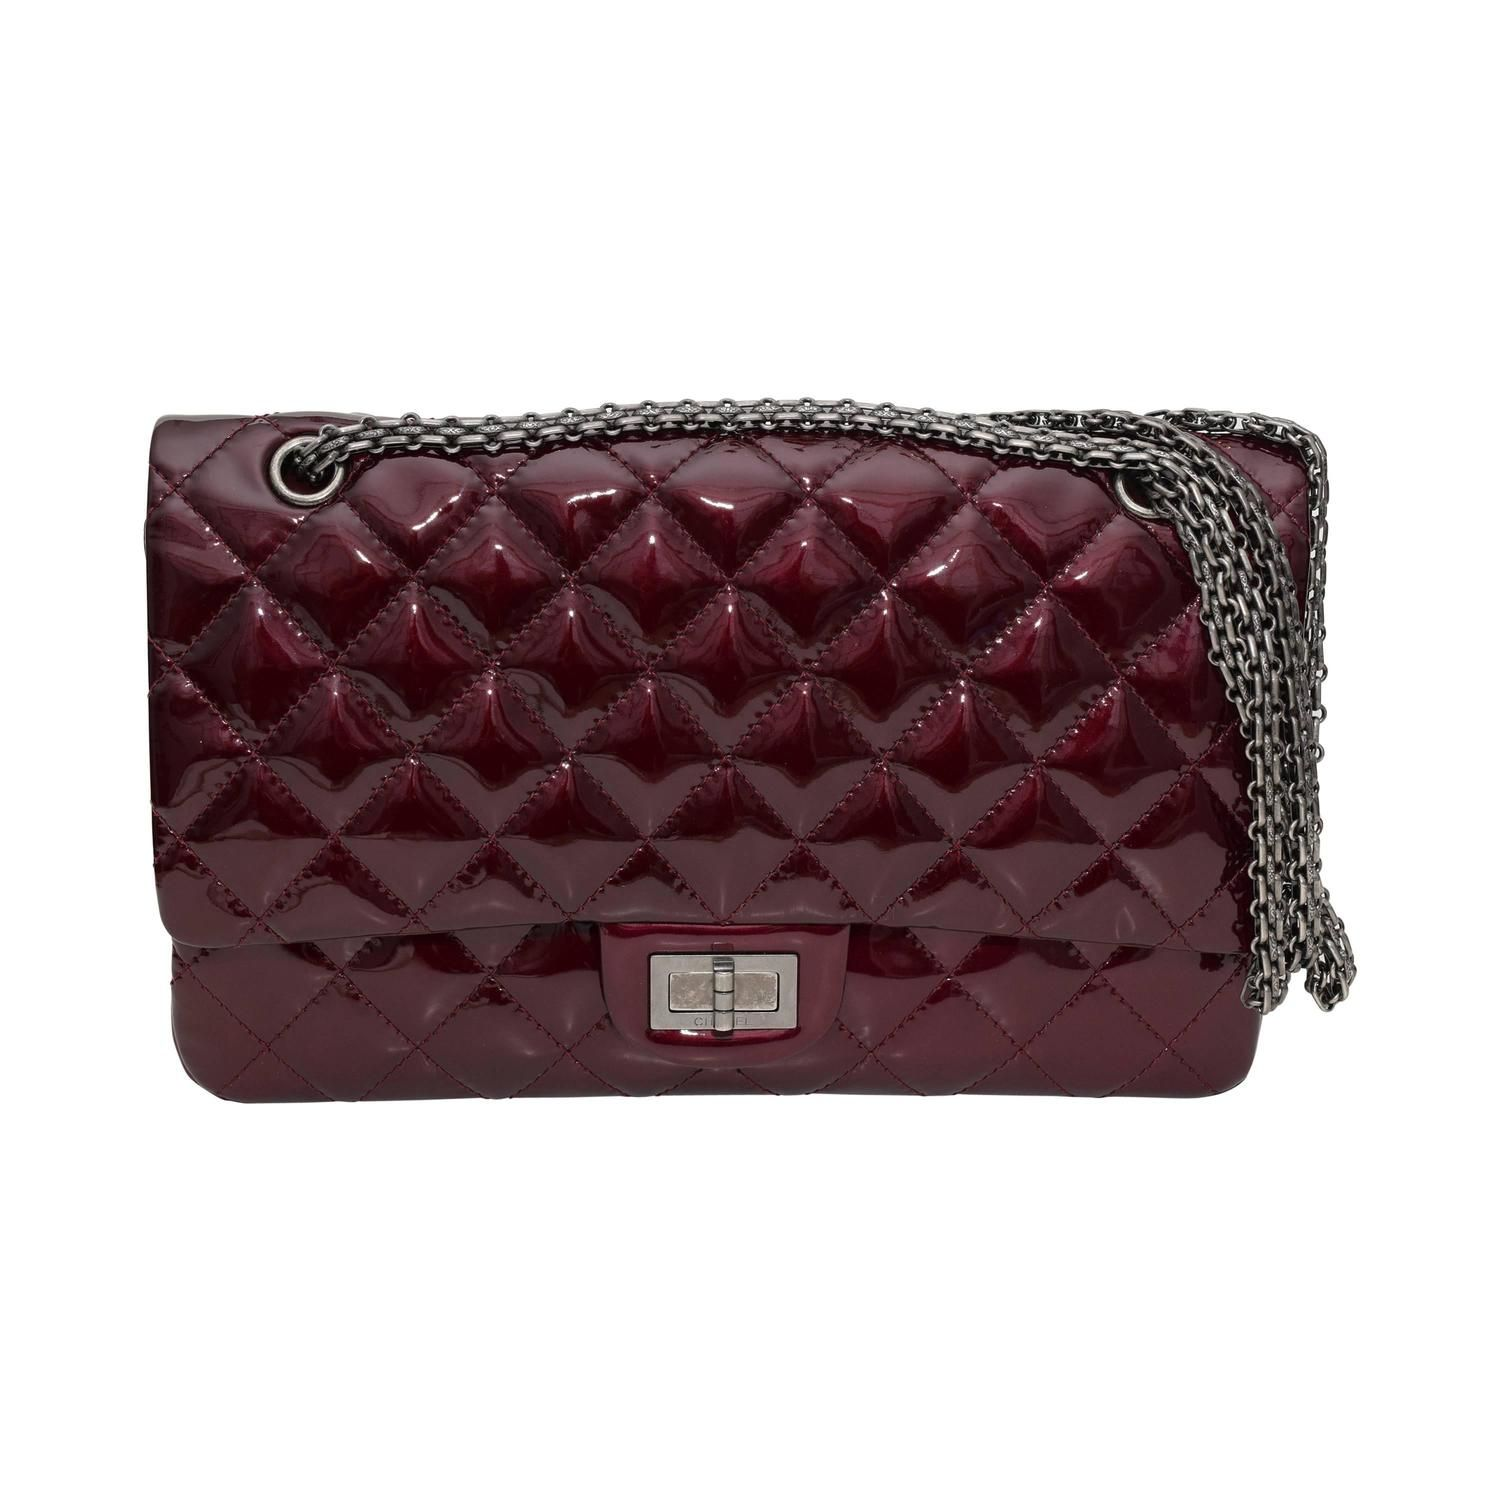 c4a893c8f48e Like New Chanel Light Burgundy patent 2.55 Reissue double Flap 227 Shoulder  Bag